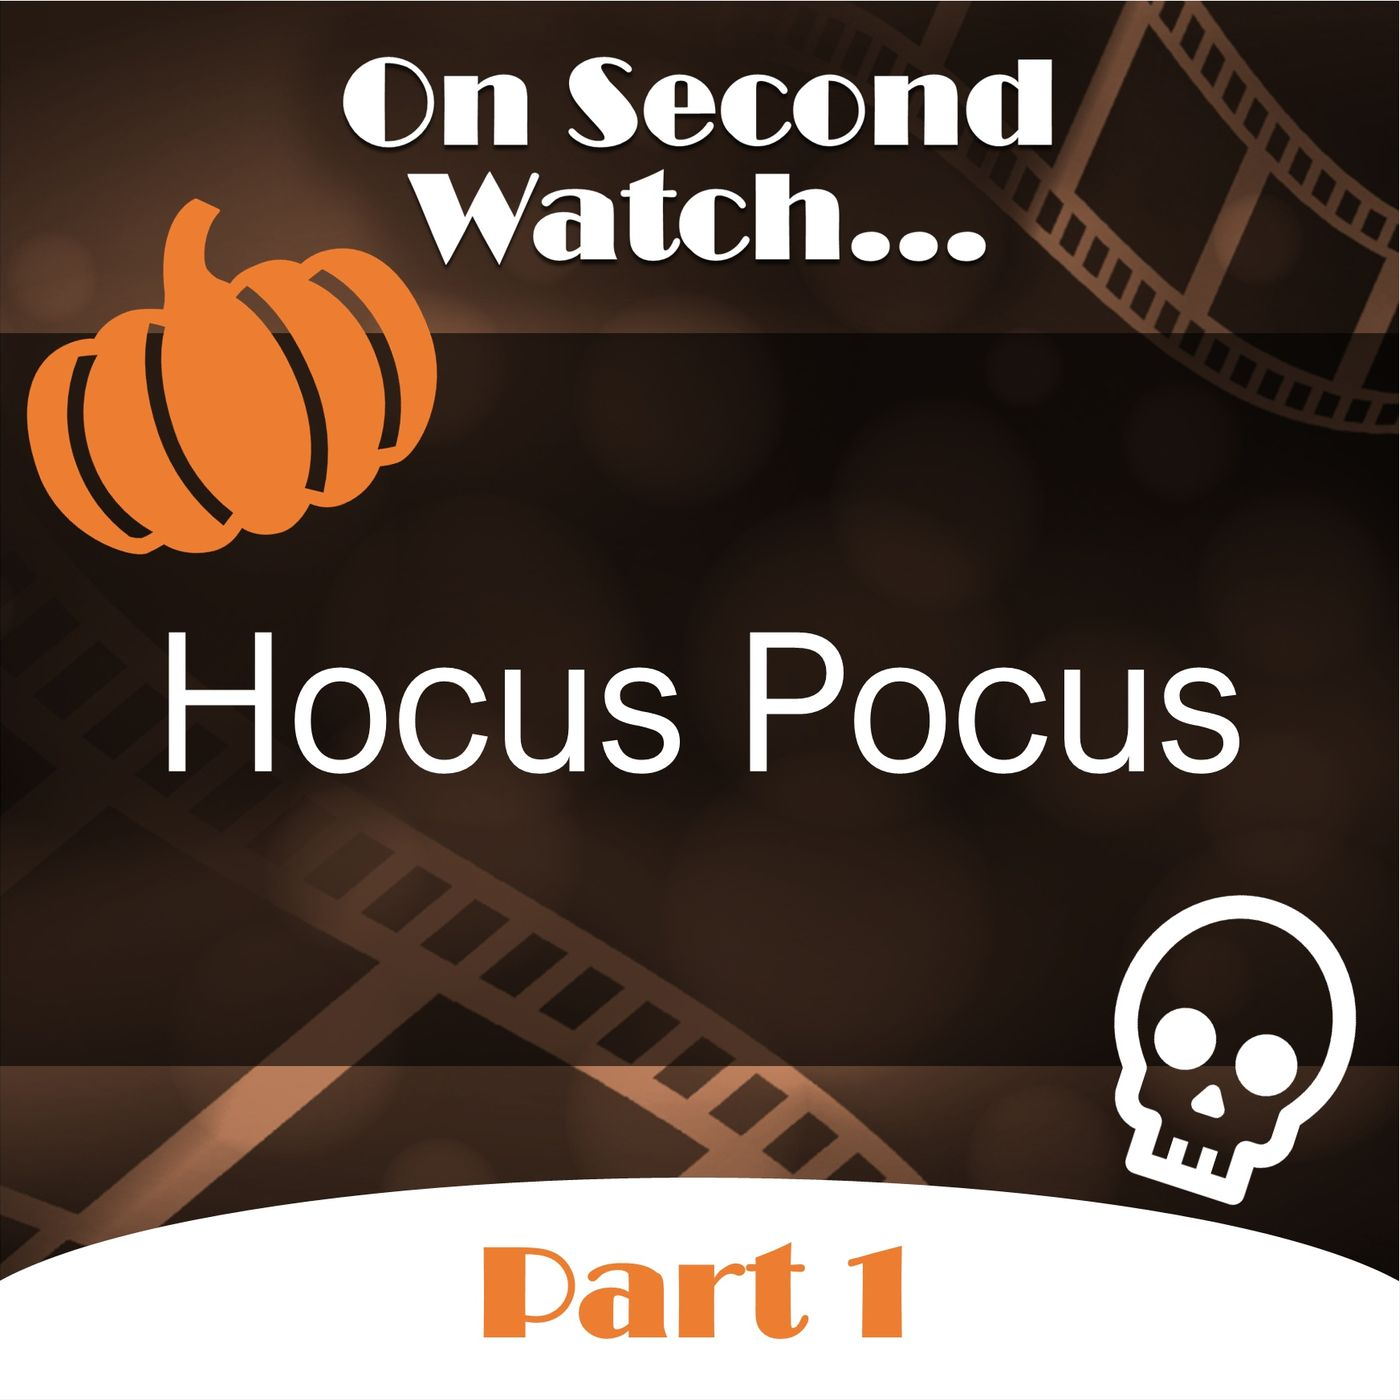 Hocus Pocus (1993) - Part 1, Nostalgia Review + More Halloween Fun!